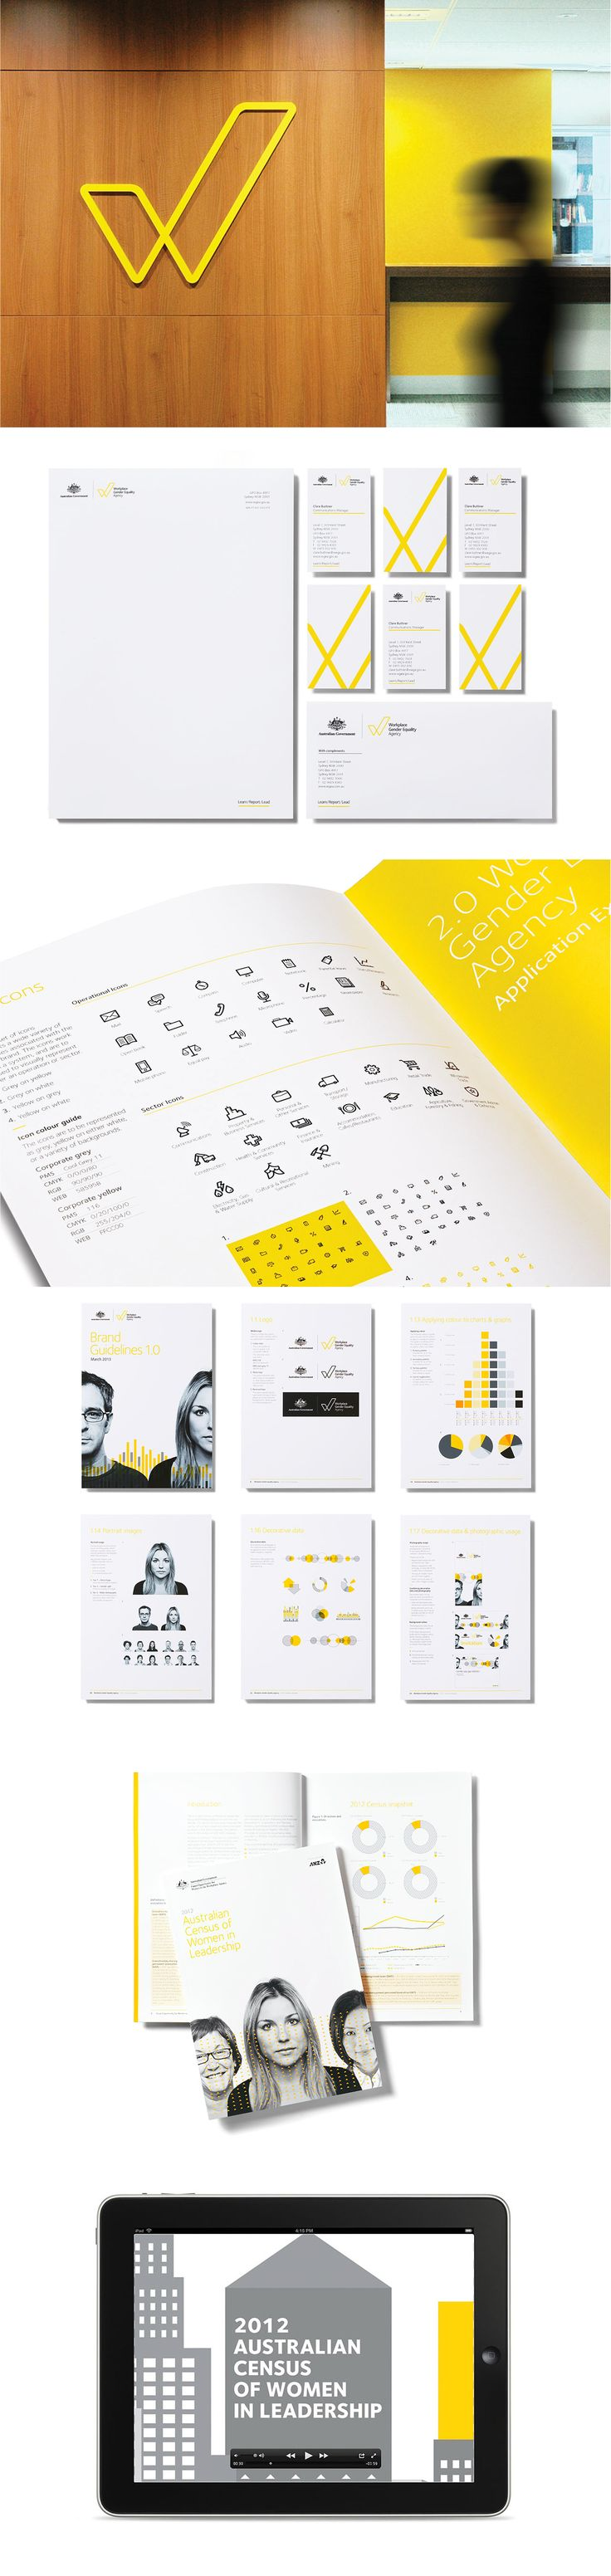 Workplace Gender Equality Agency by Ascender #brand #branding #identity #design #visual #graphic #logo #logotype #collateral #stationery #business #cards #letterhead #annual #report #infographics #info #graphics #data #visualisation #environmental #signage #sign #photography